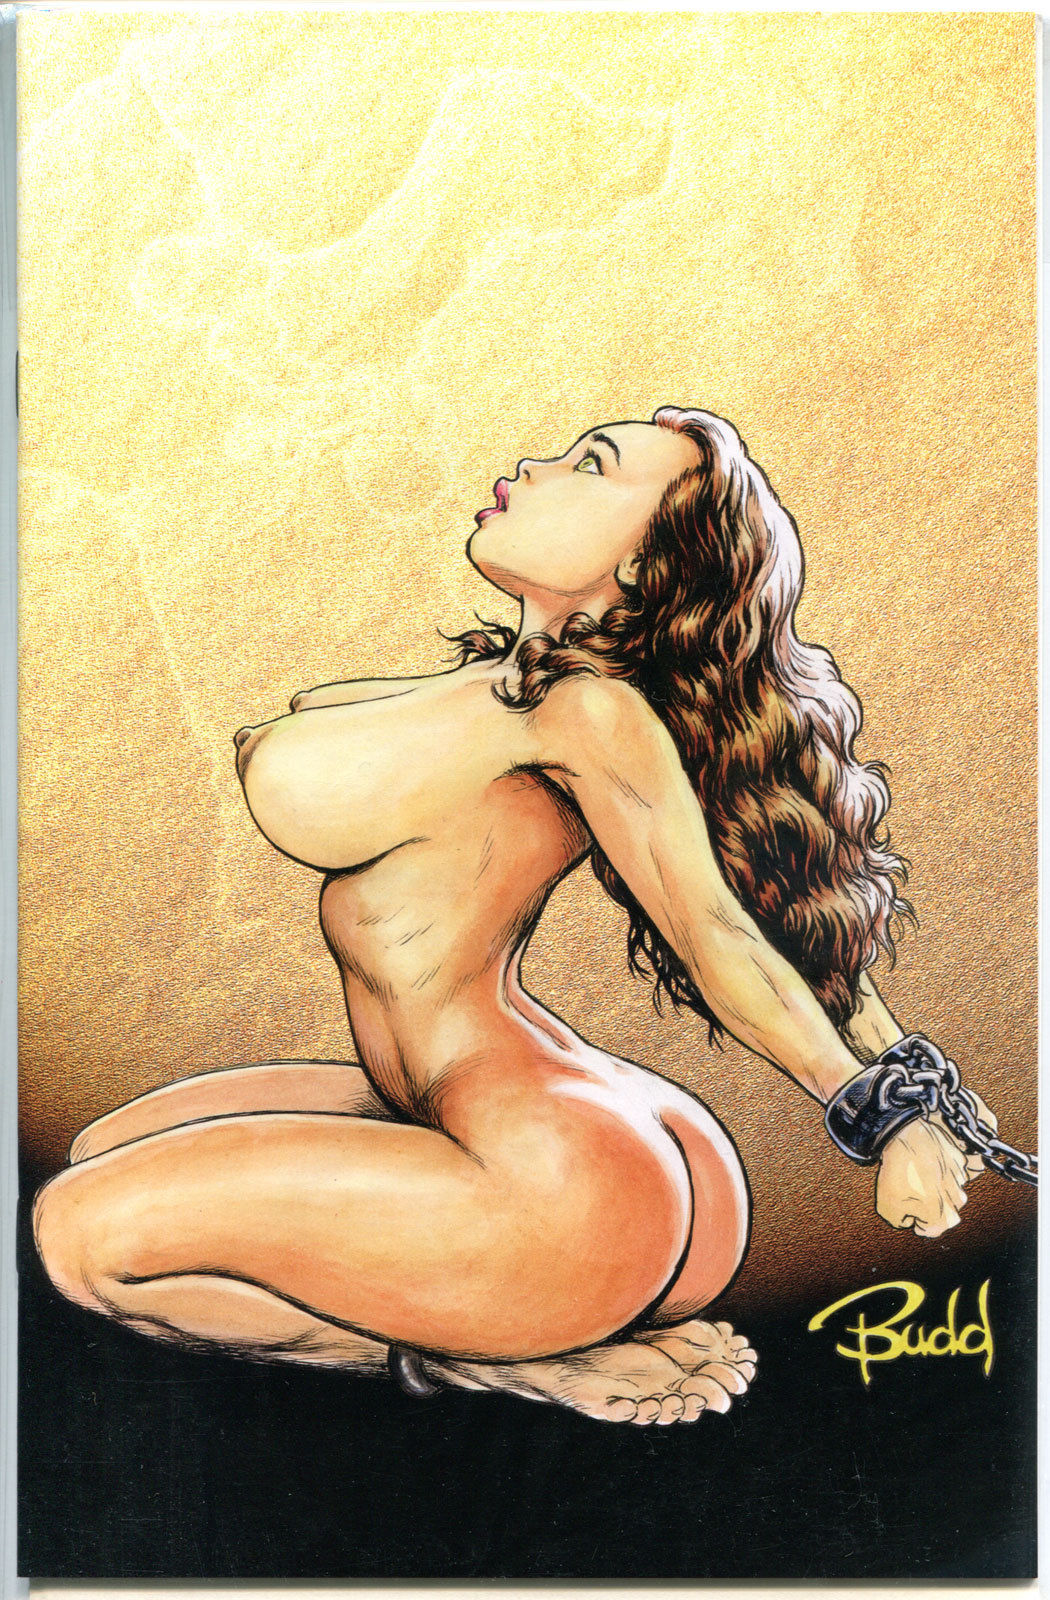 CAVEWOMAN OASIS #1, Variant, NM, Budd Root, 2013, COA, more CW in store